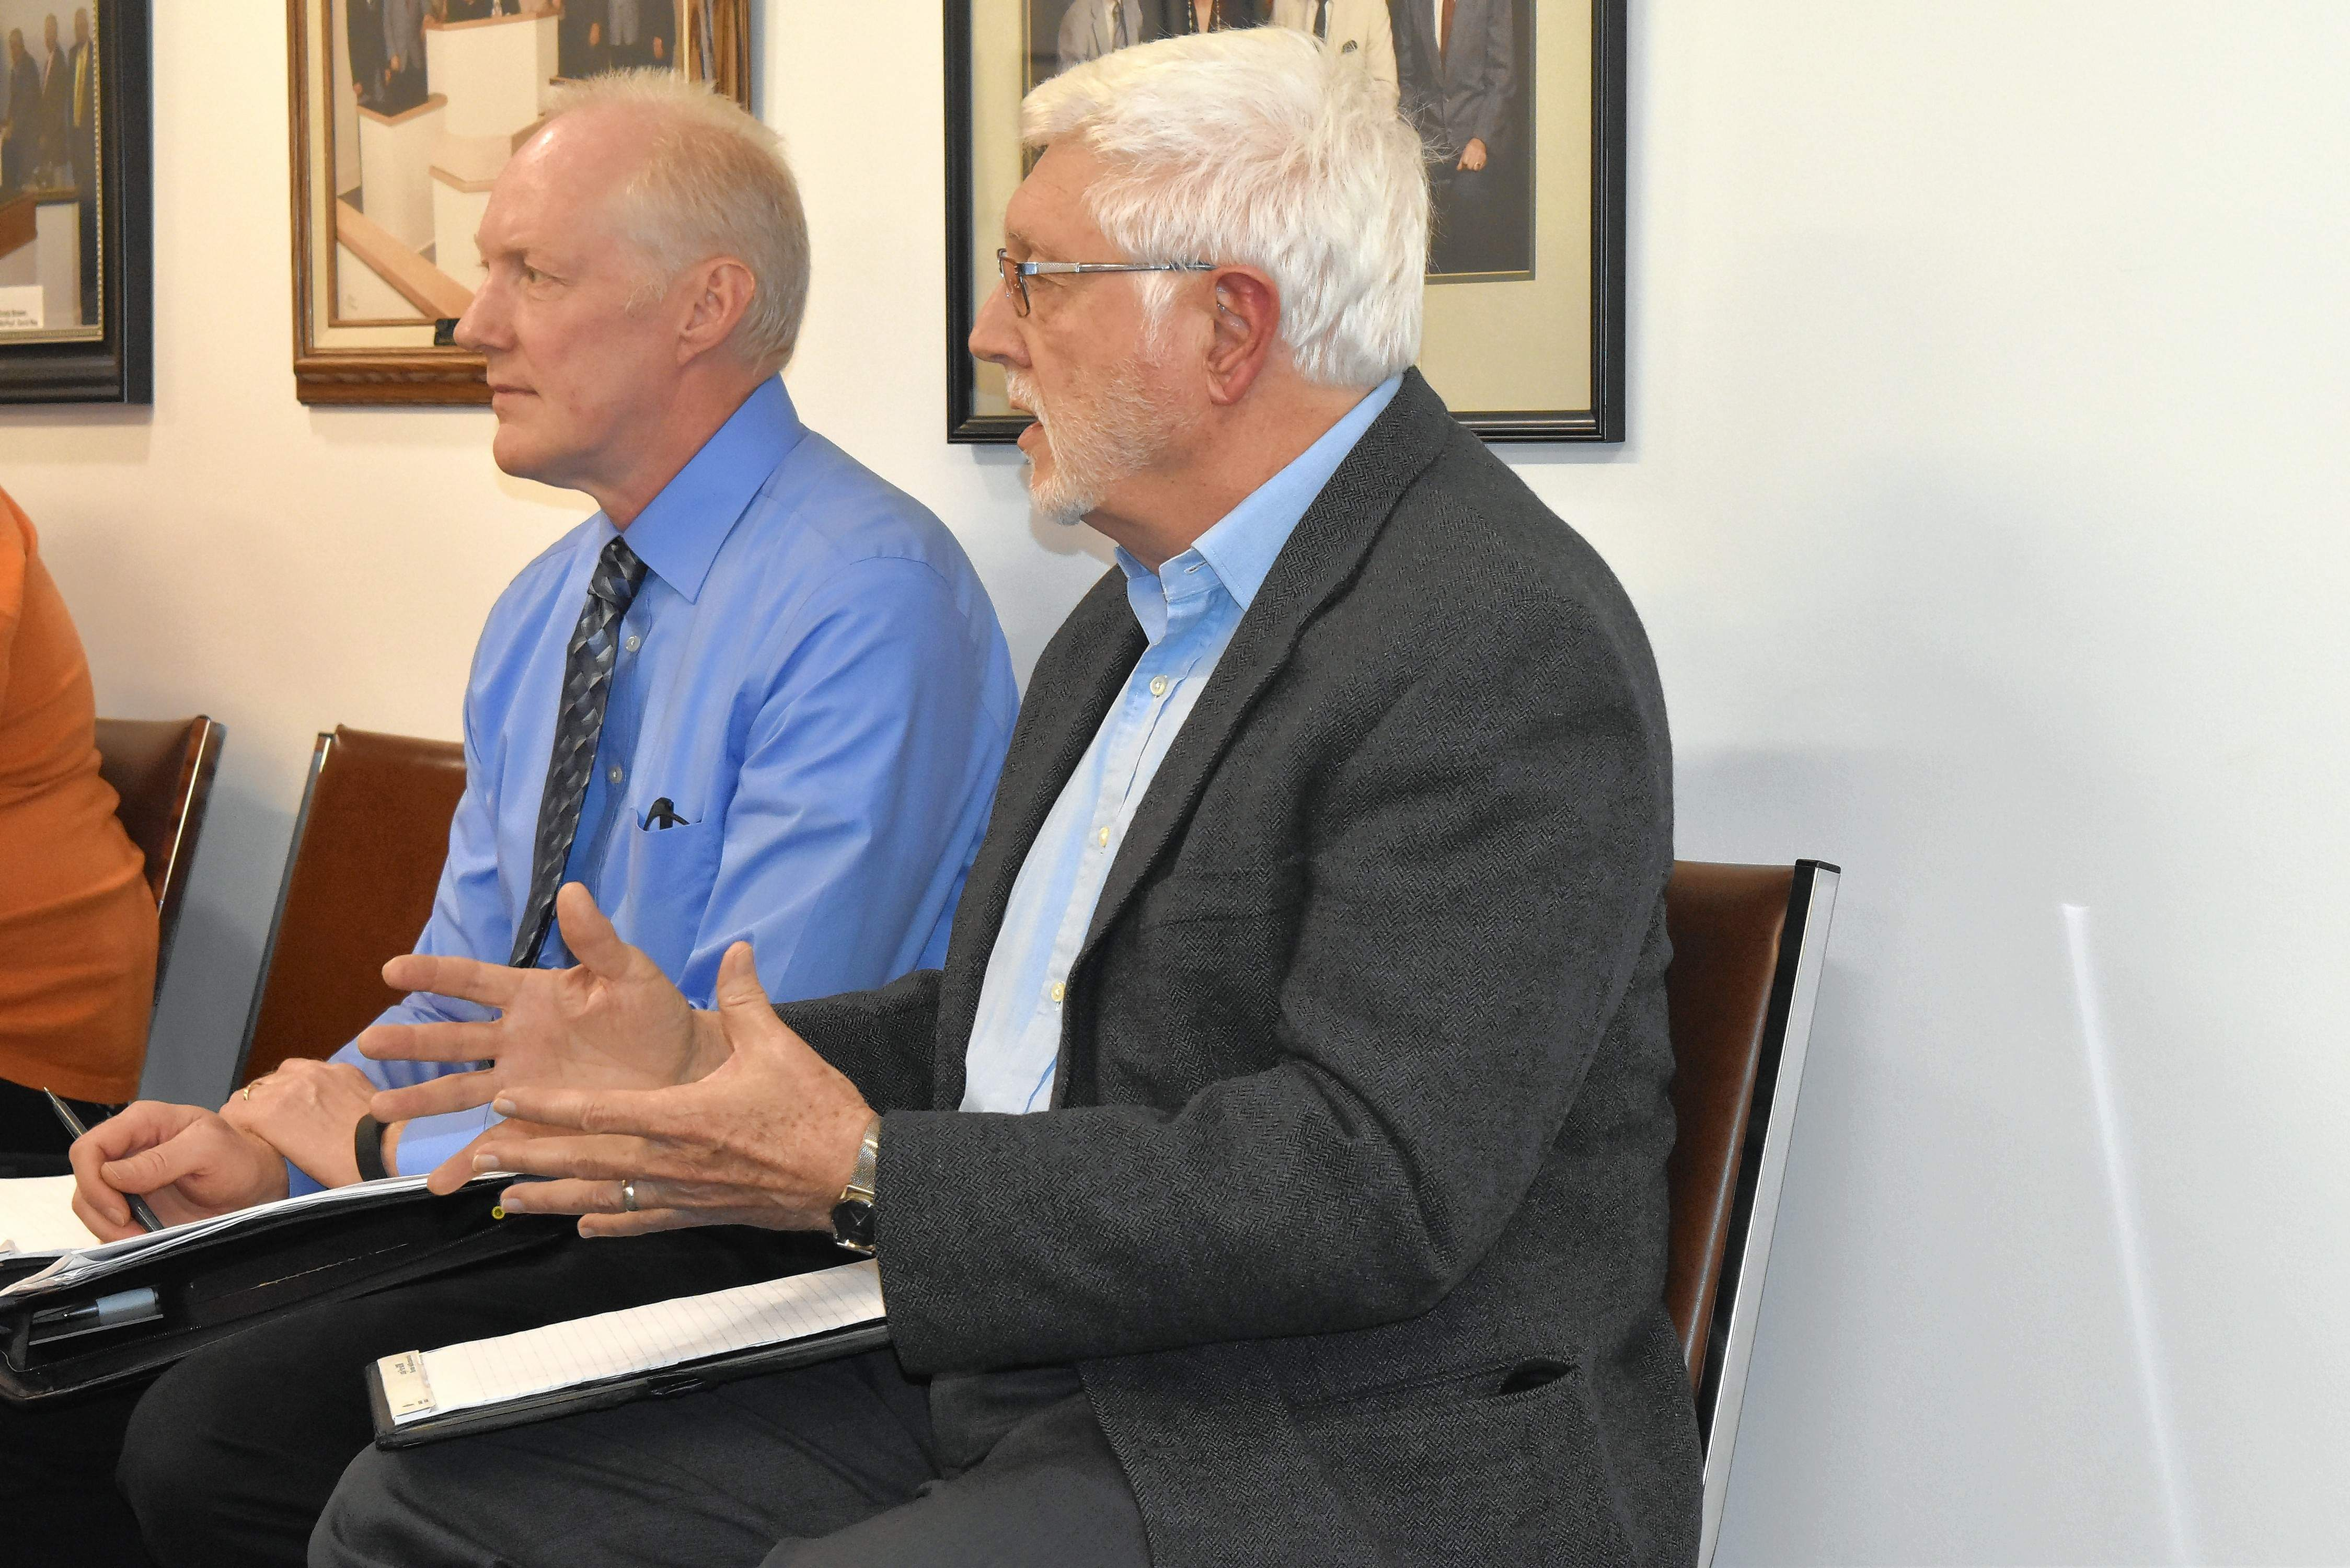 Gail White, right, principal owner of White and Borgognoni Architects, explains what his company will do for Franklin County officials in preparing a preliminary study and design for a new courthouse. At left is Van Voyles, principal architect.